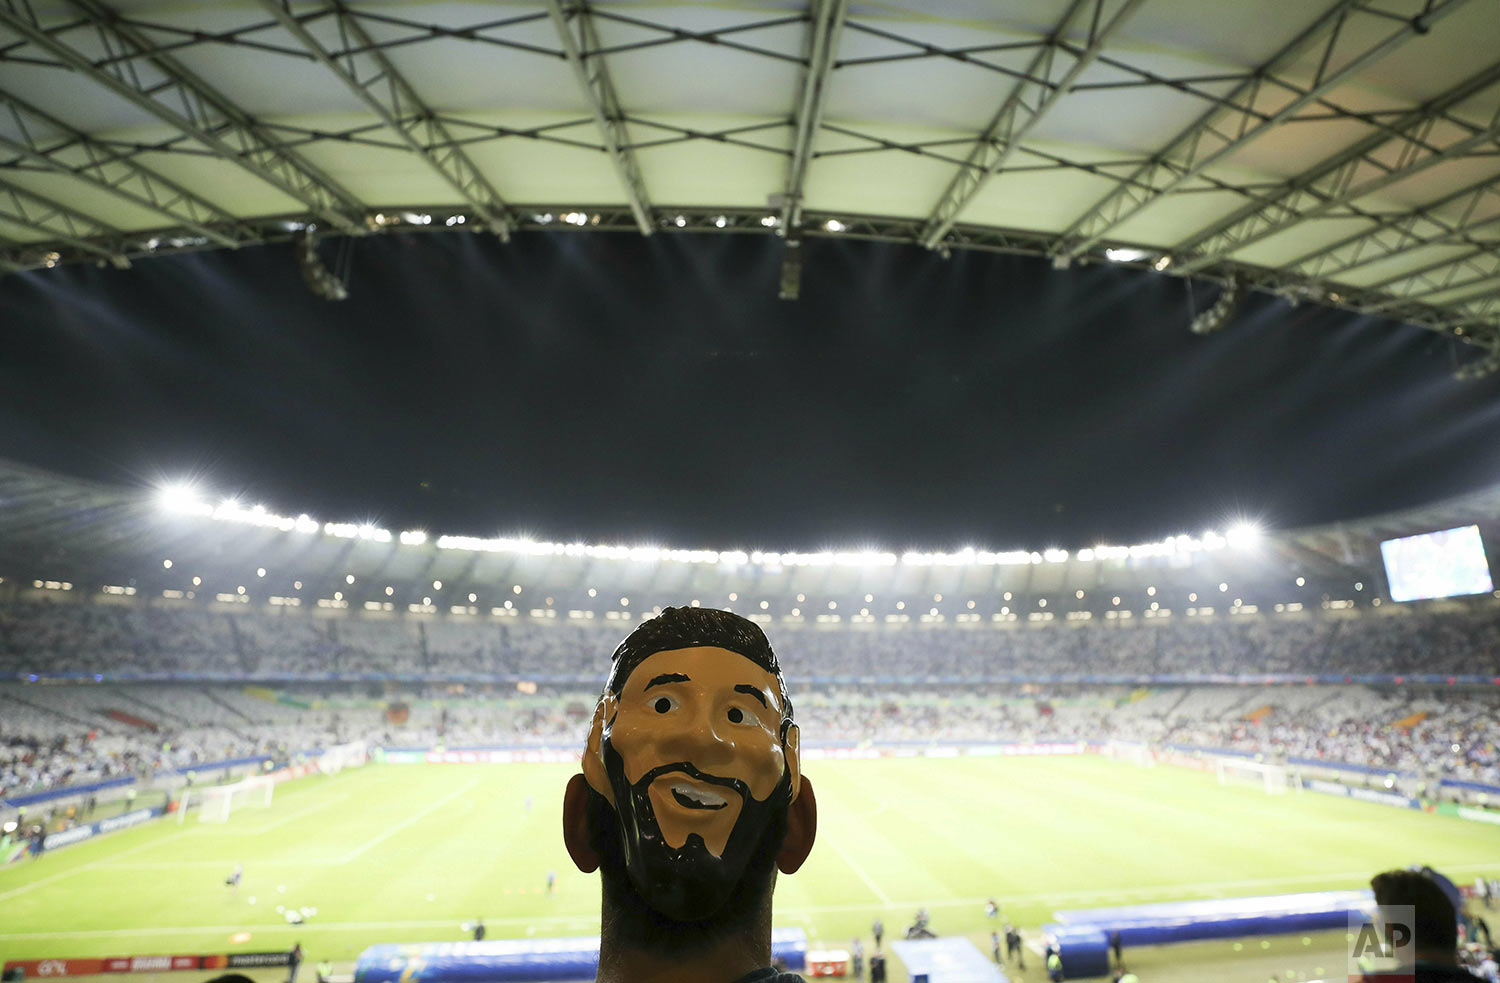 An Argentine fan wears a mask with the image of striker Lionel Messi prior a Copa America Group B soccer match against Paraguay at Mineirao stadium in Belo Horizonte, Brazil, Wednesday, June 19, 2019. (AP Photo/Ricardo Mazalan)